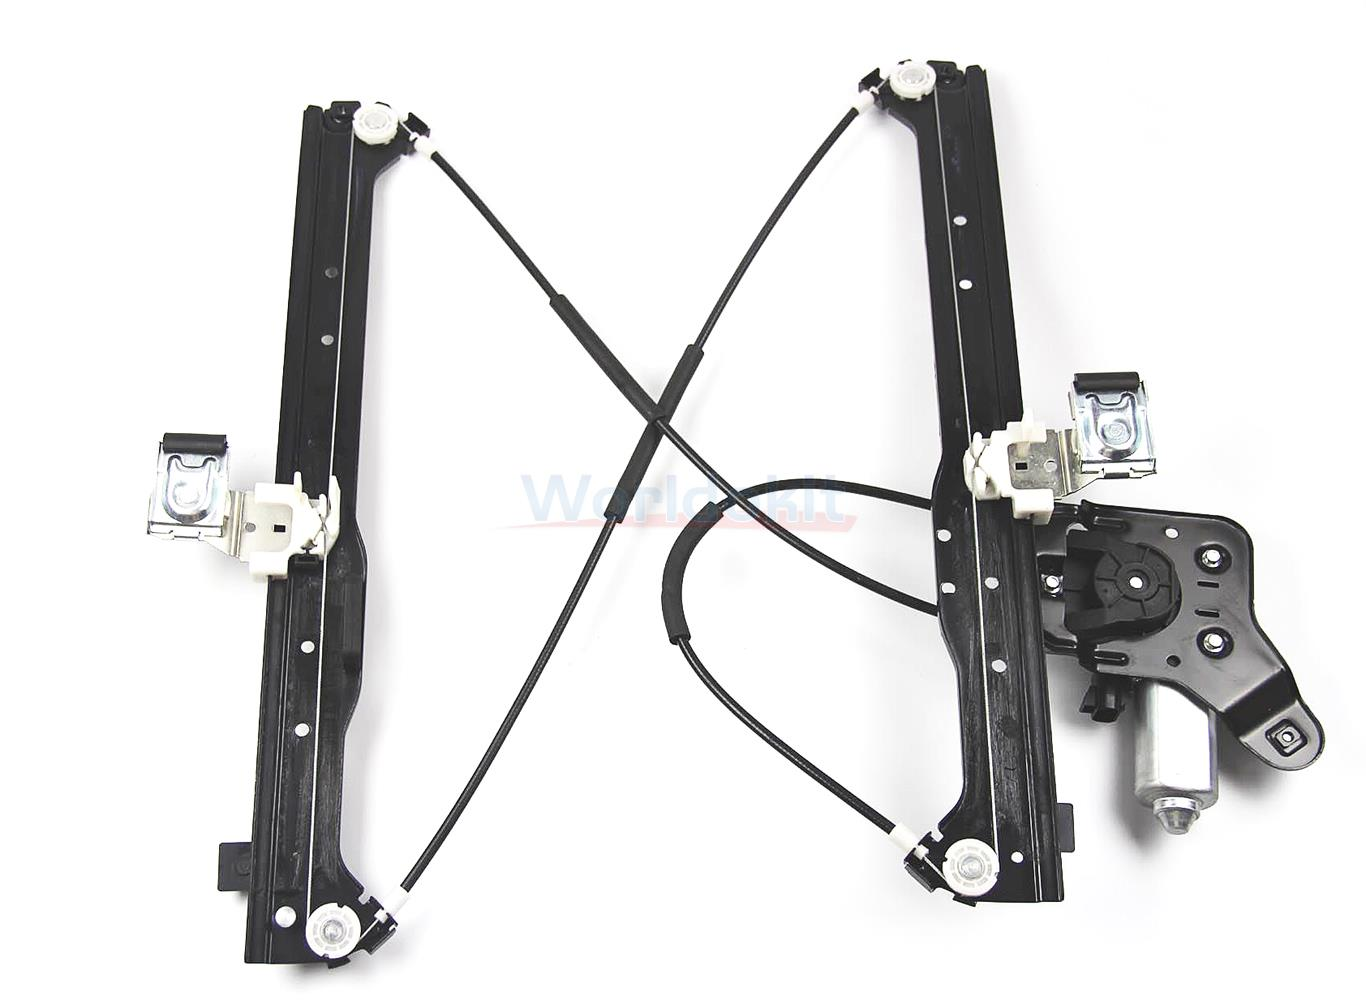 High quality chevrolet silverado 1500 window regulator at for 2001 silverado window motor replacement